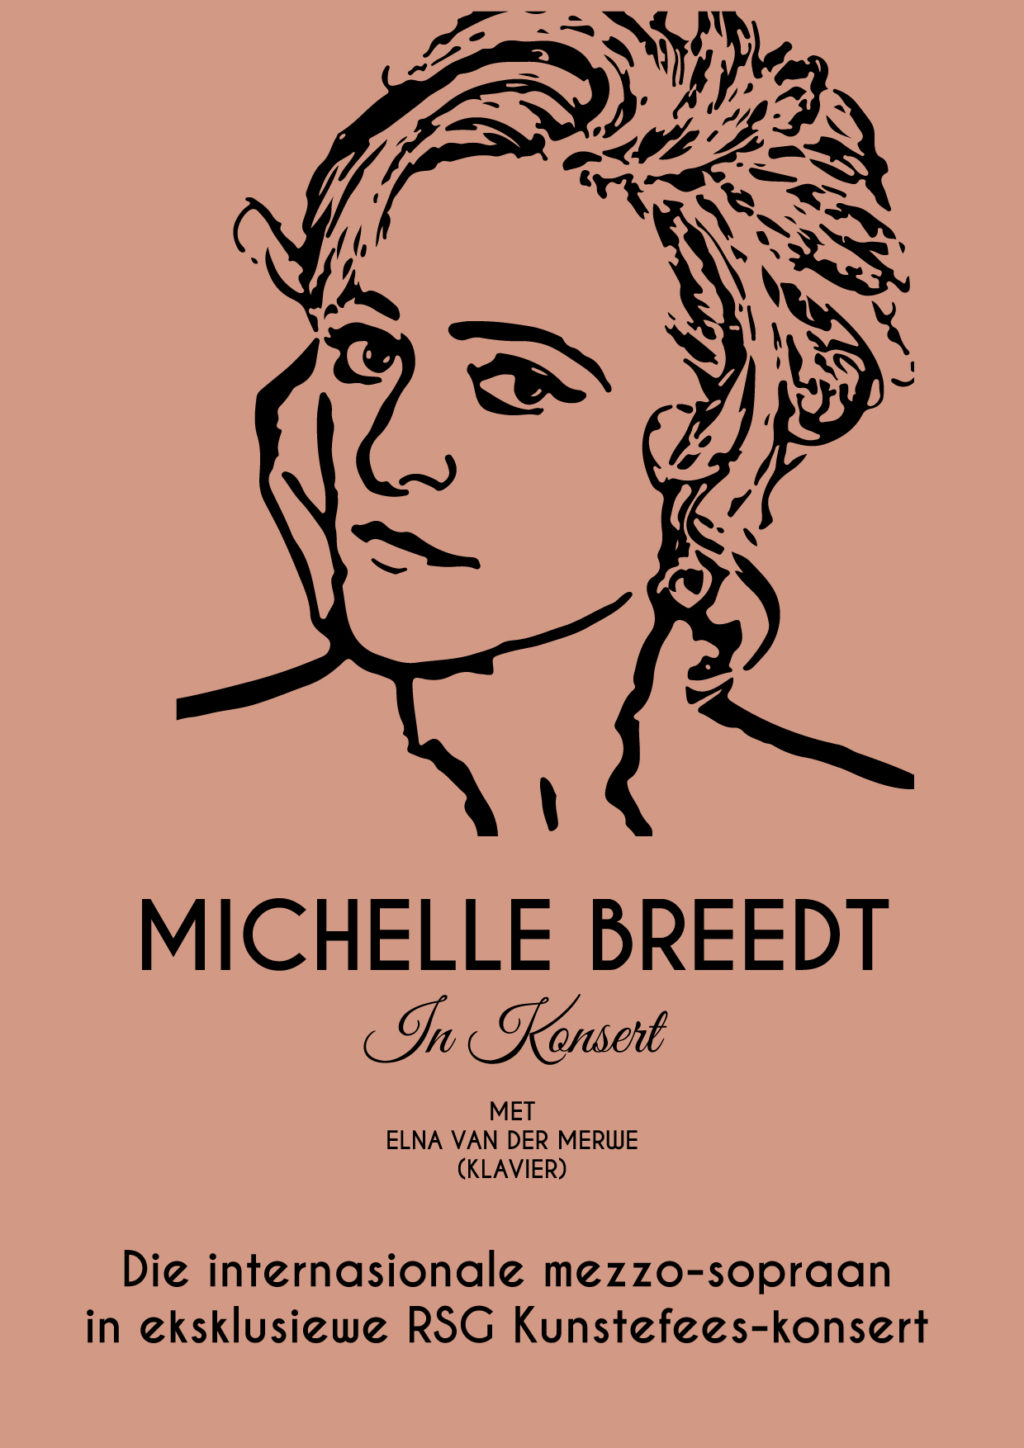 Sondag 19h40: Michelle Breedt in konsert